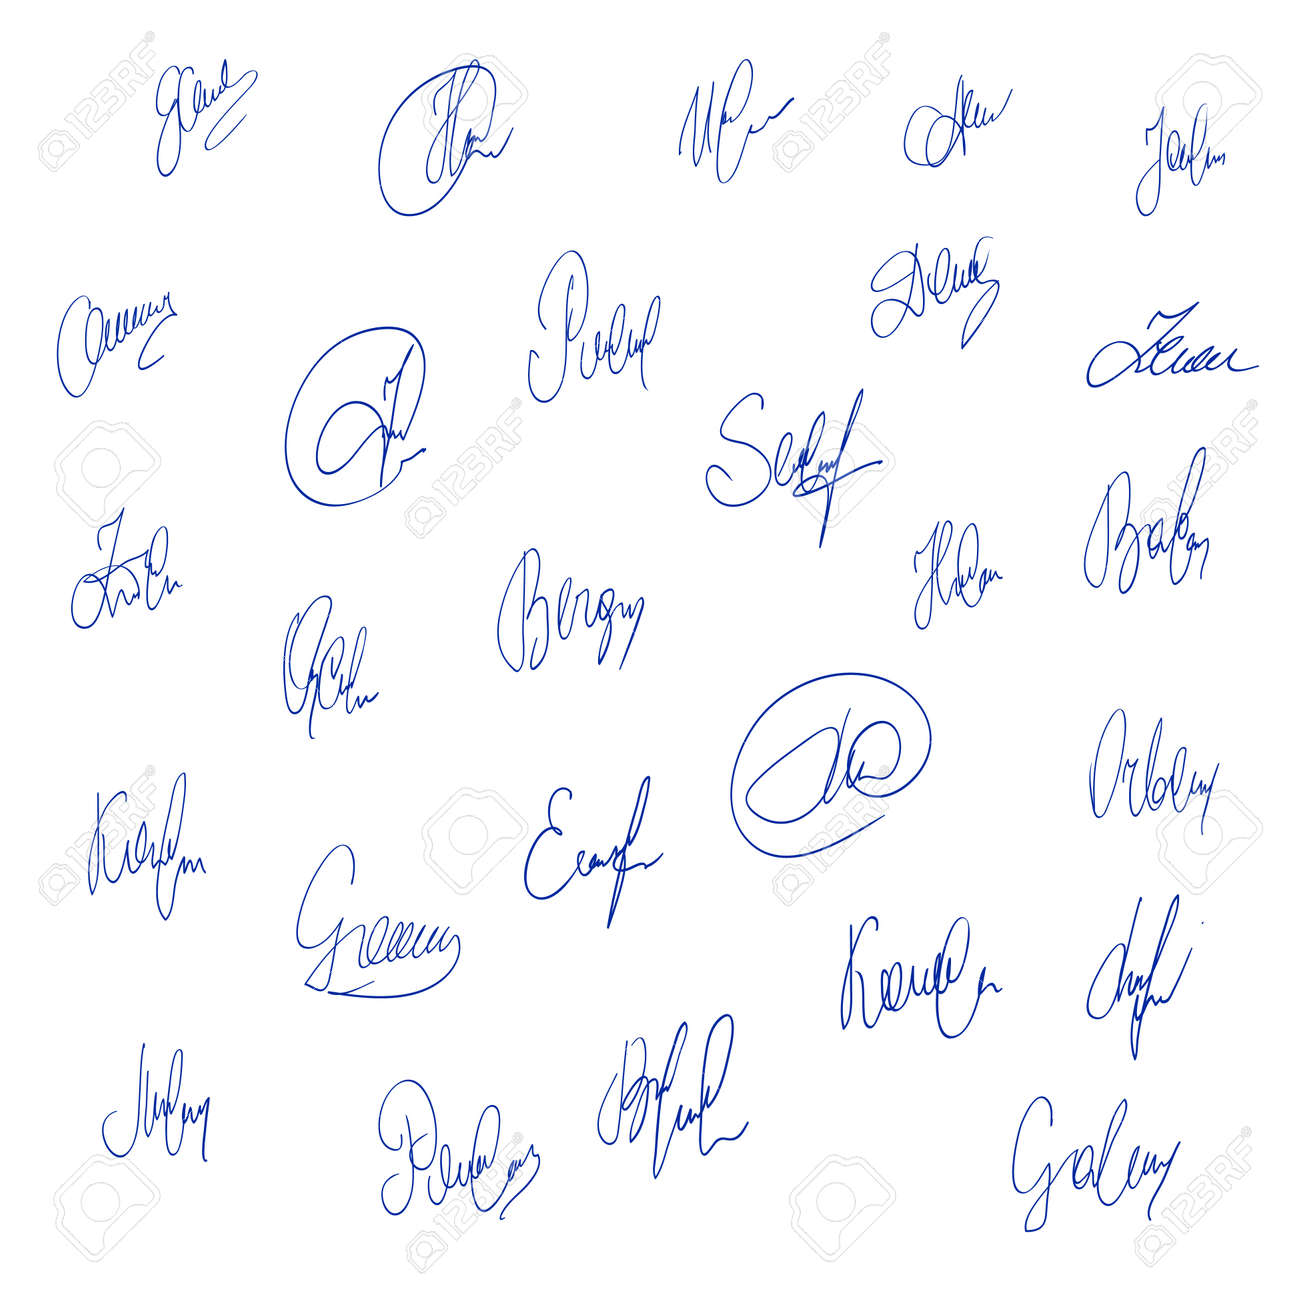 Collection of vector signatures fictitious autograph personal signature isolated on white background stock vector